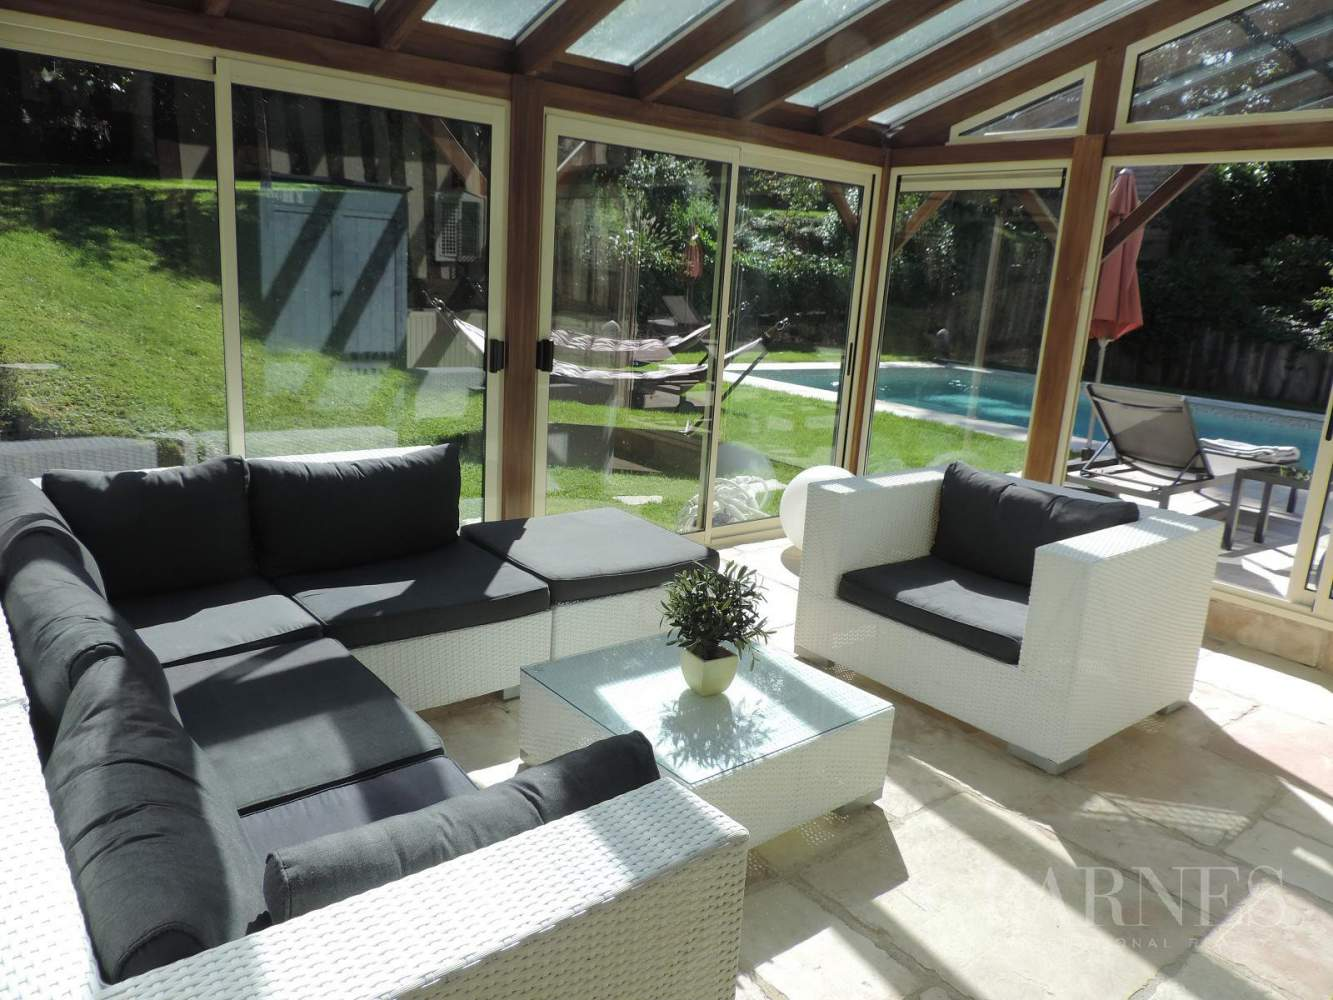 Near Deauville Property with character - 5 bedrooms - heated pool, tennis court, 2.47-acre landscaped park picture 5